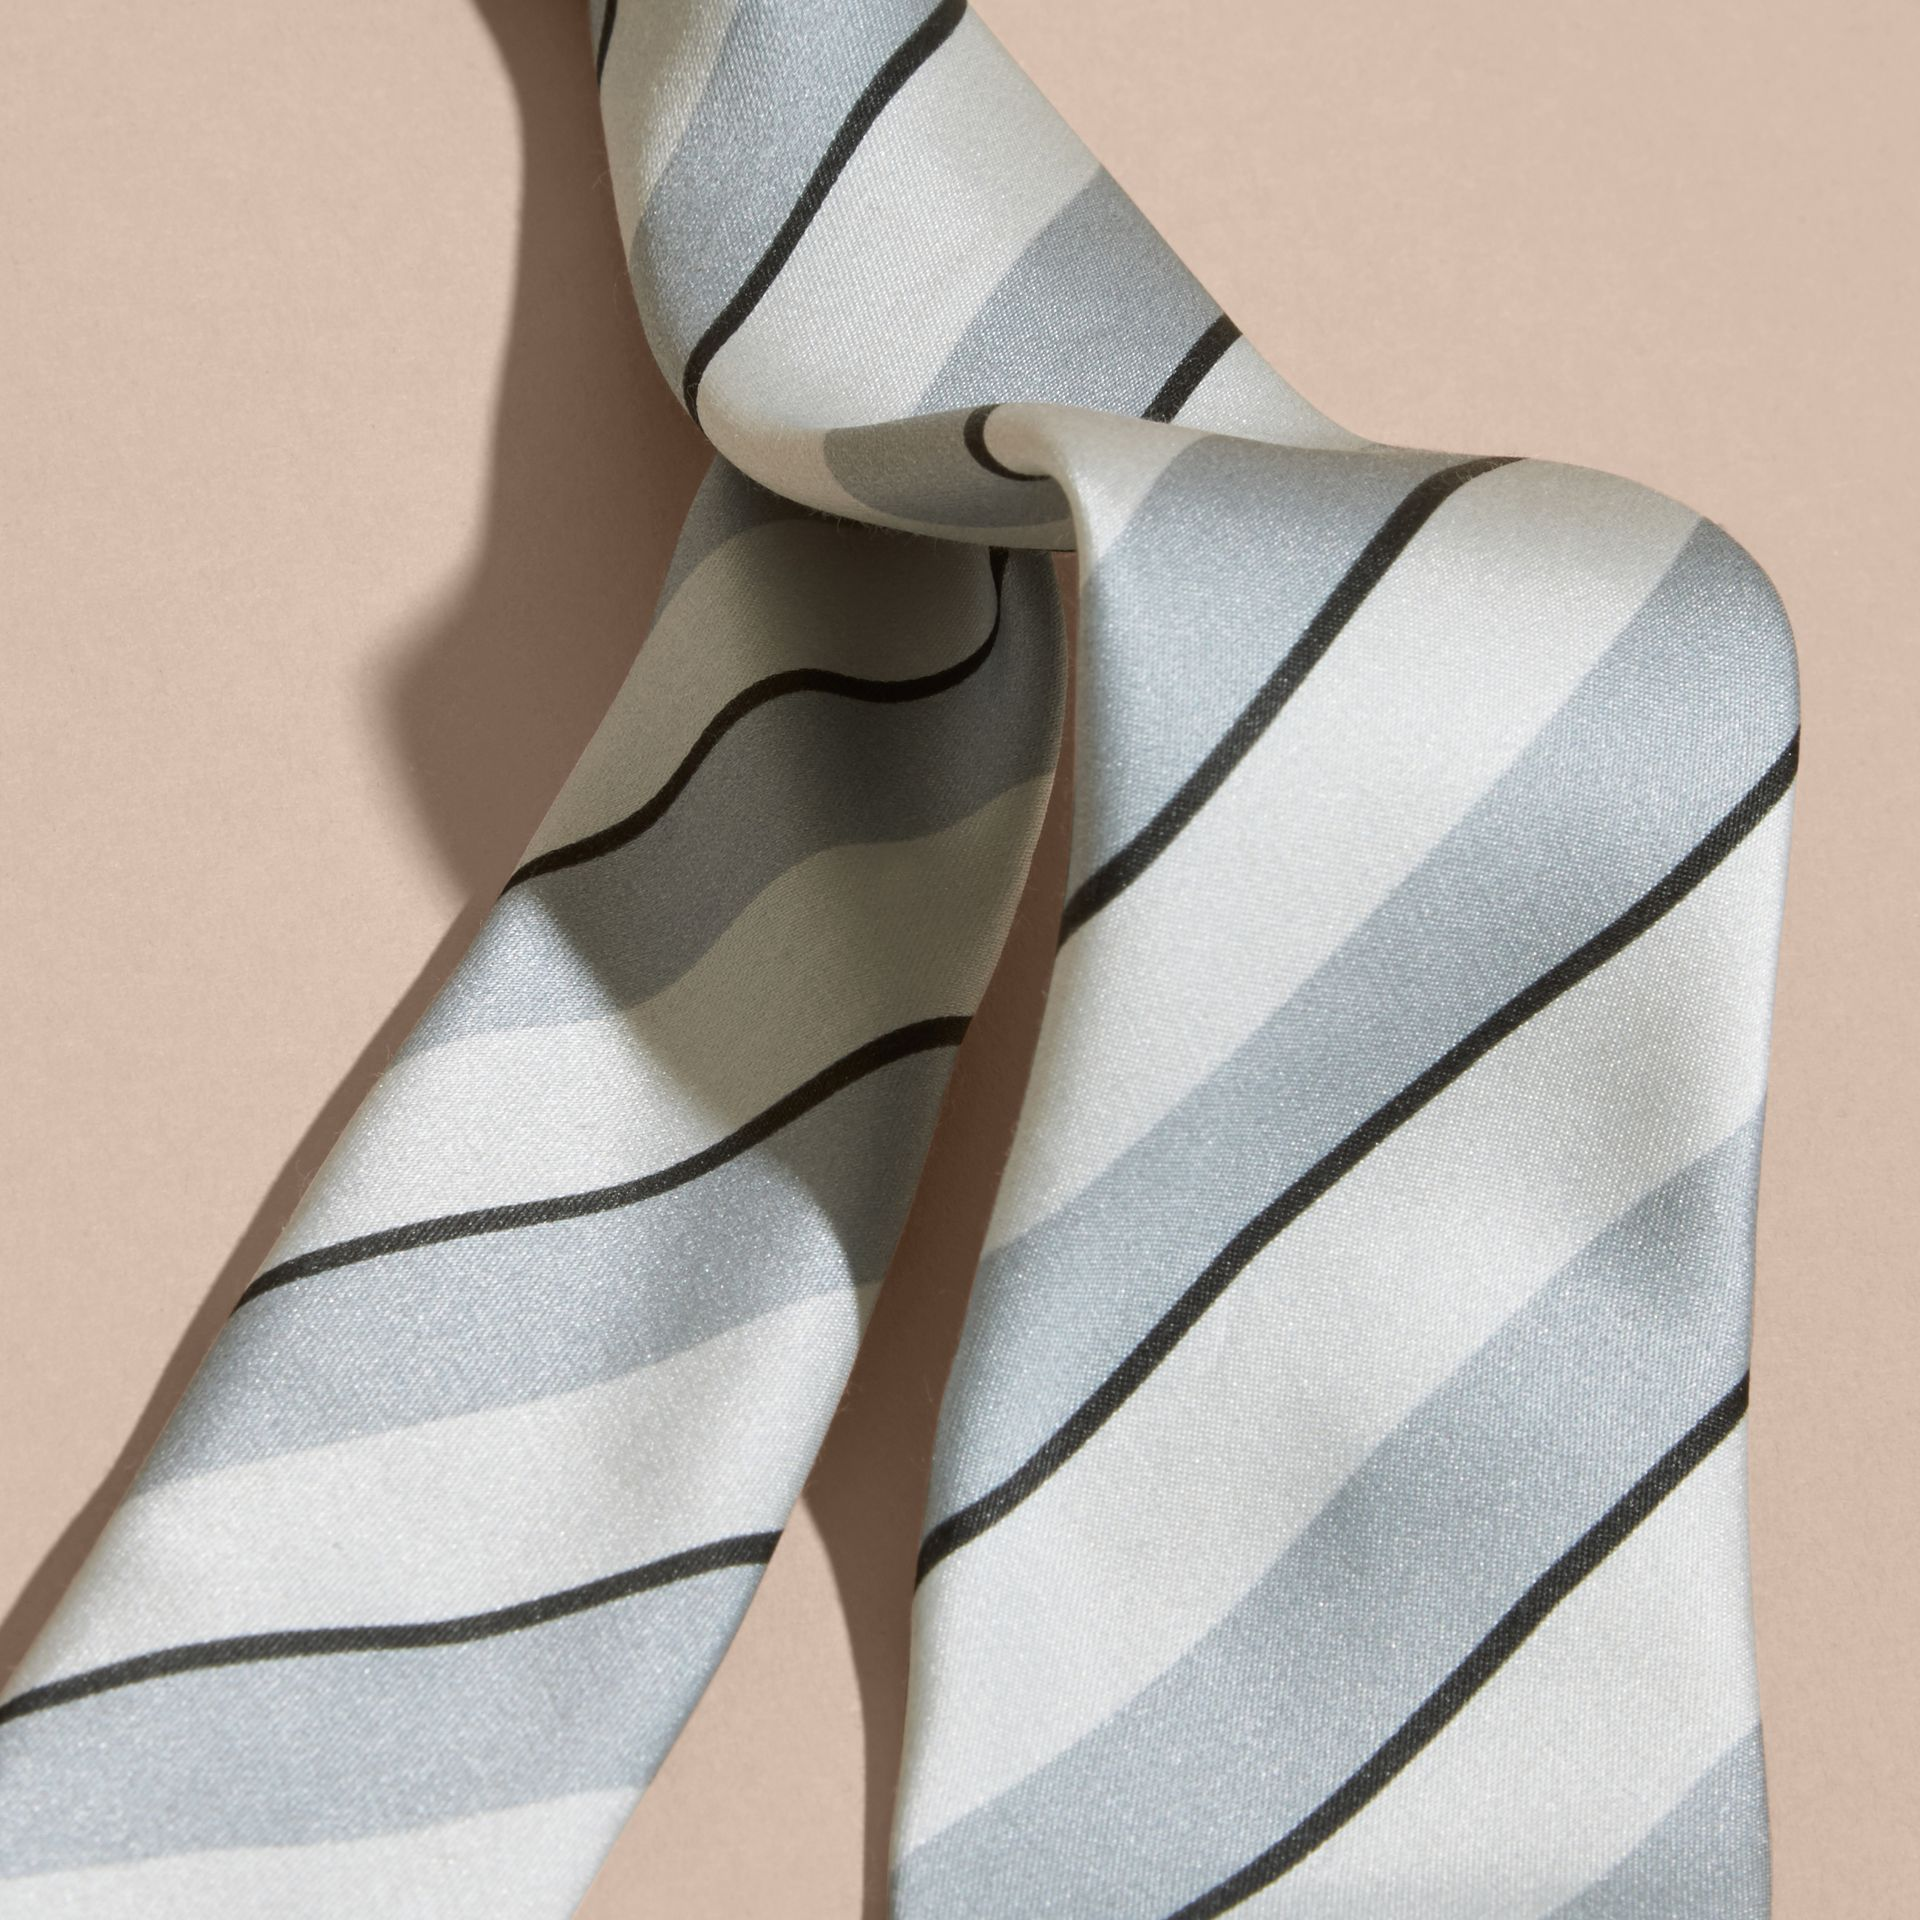 Slim Cut Pyjama Stripe Silk Cotton Tie in Light Blue - Men | Burberry - gallery image 2